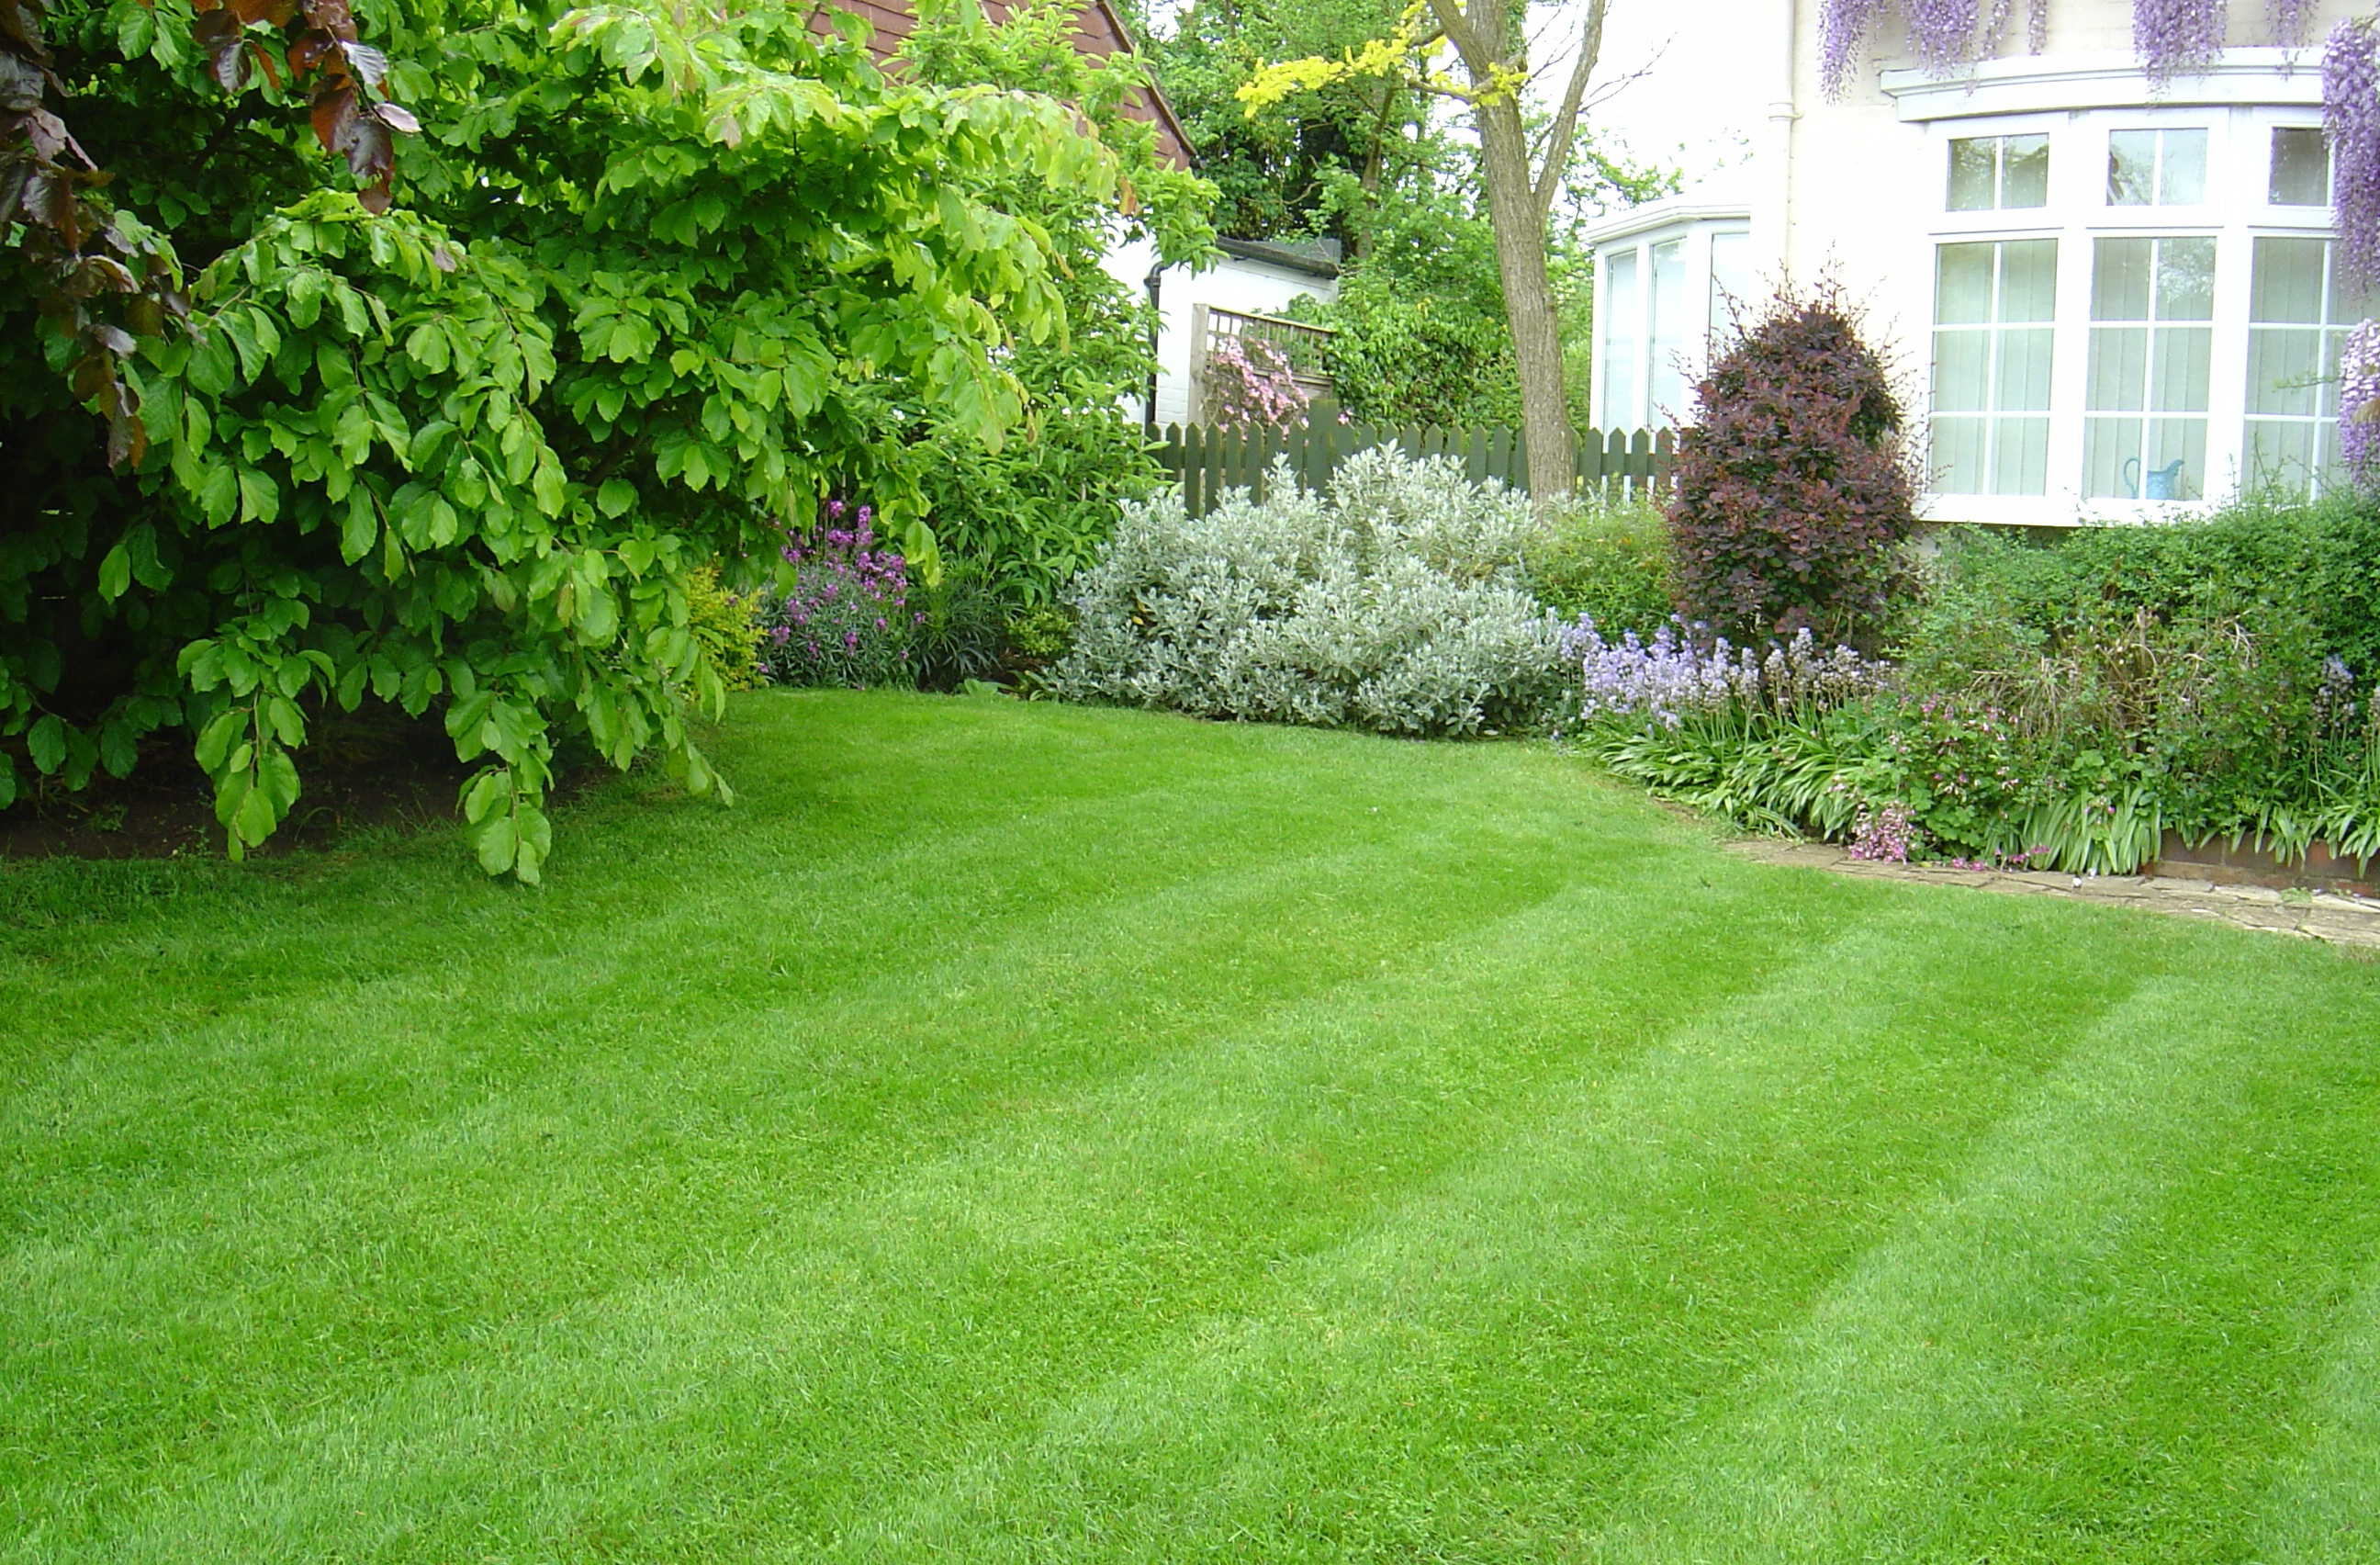 Lawn care vertopia gardens for Lawn and garden services